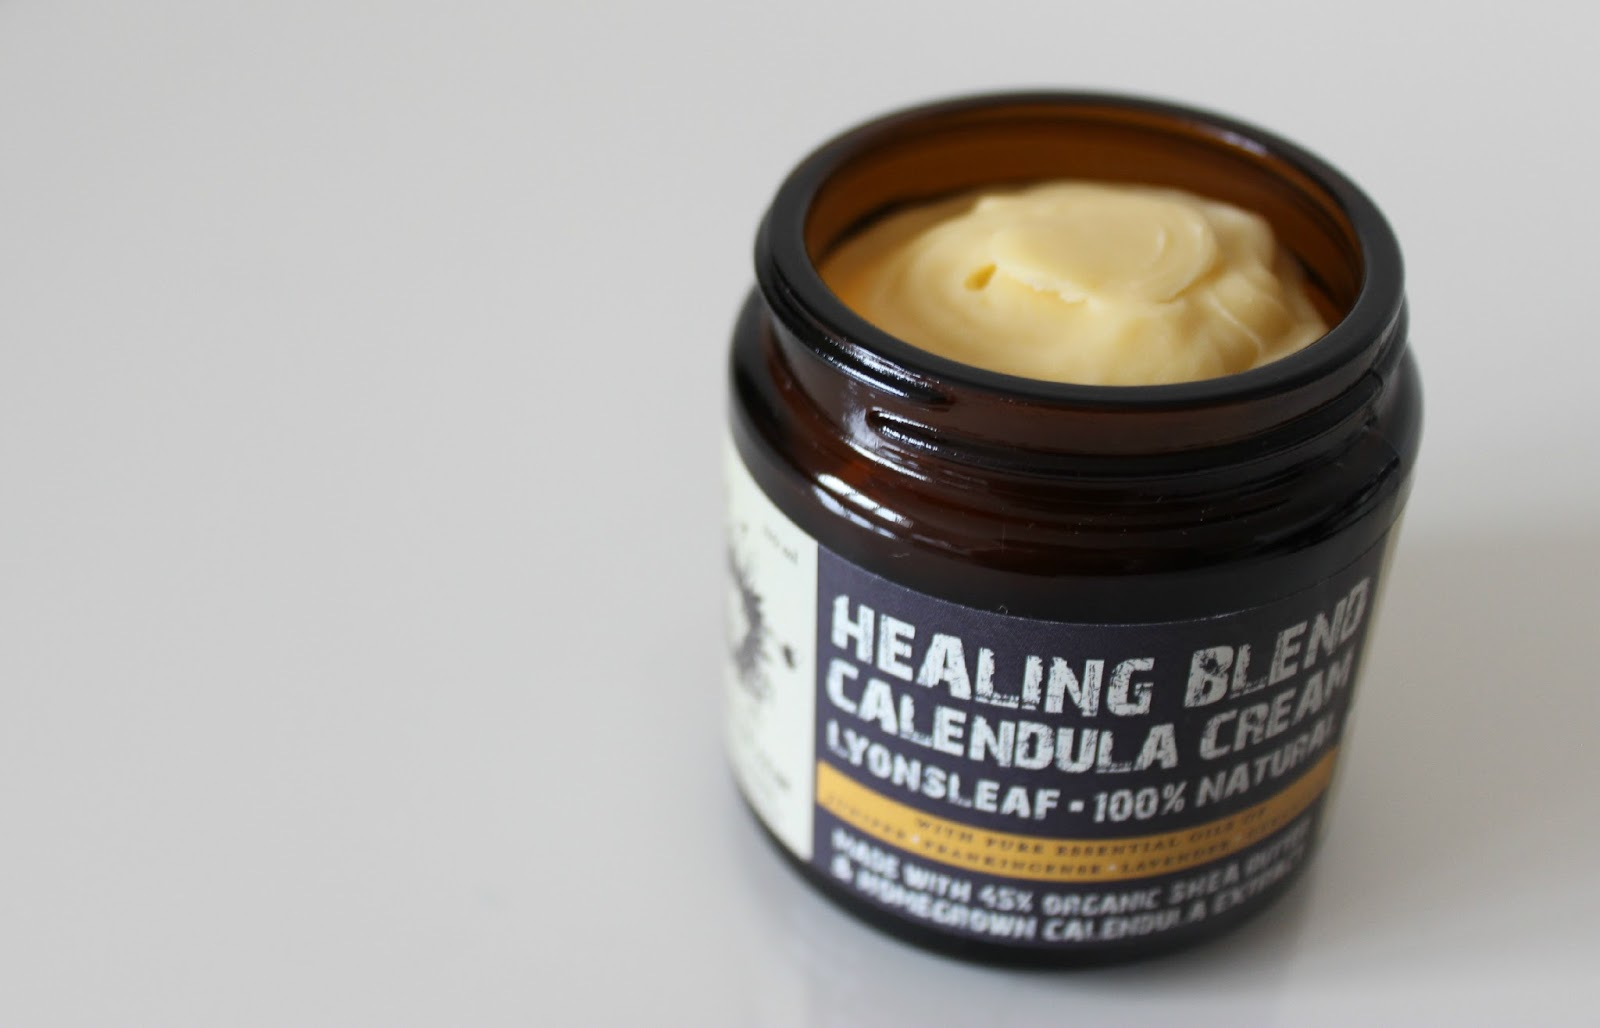 A picture of the Lyonsleaf Healing Blend Calendula Cream